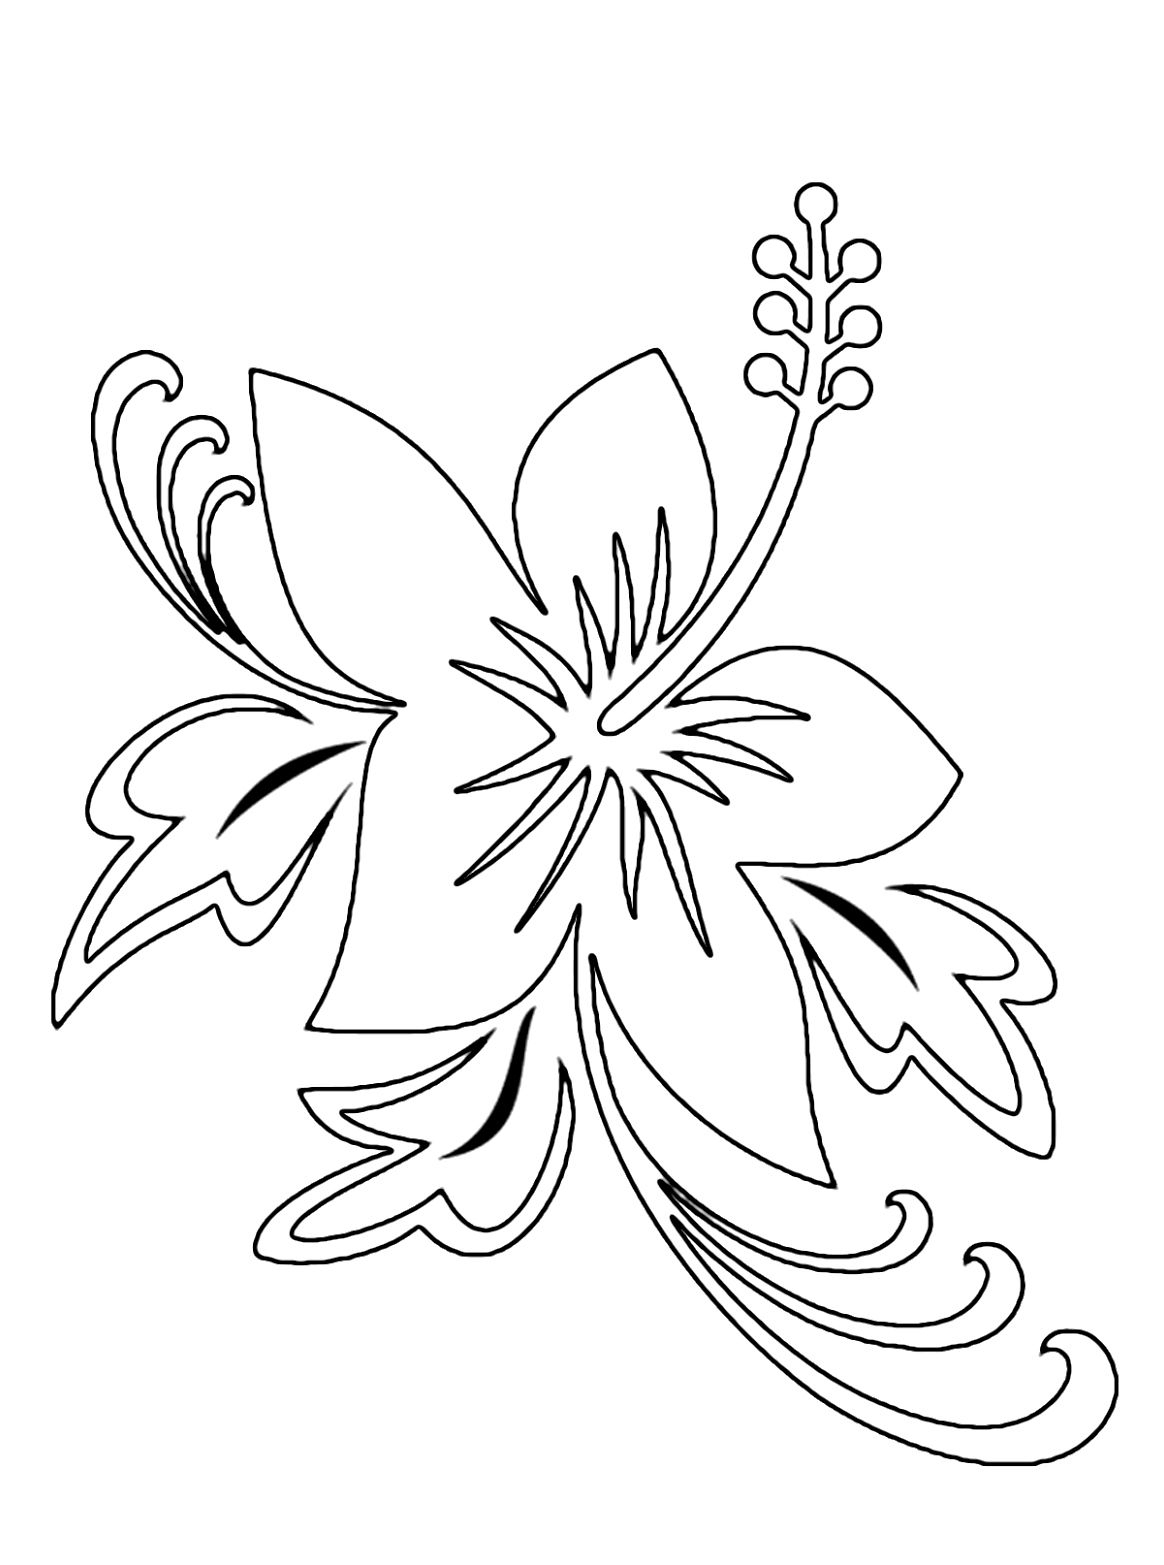 Hawaii Flower Outline Pin Hibiscus Coloring Pages 11170 Hd dedans Coloriage Hawaienne